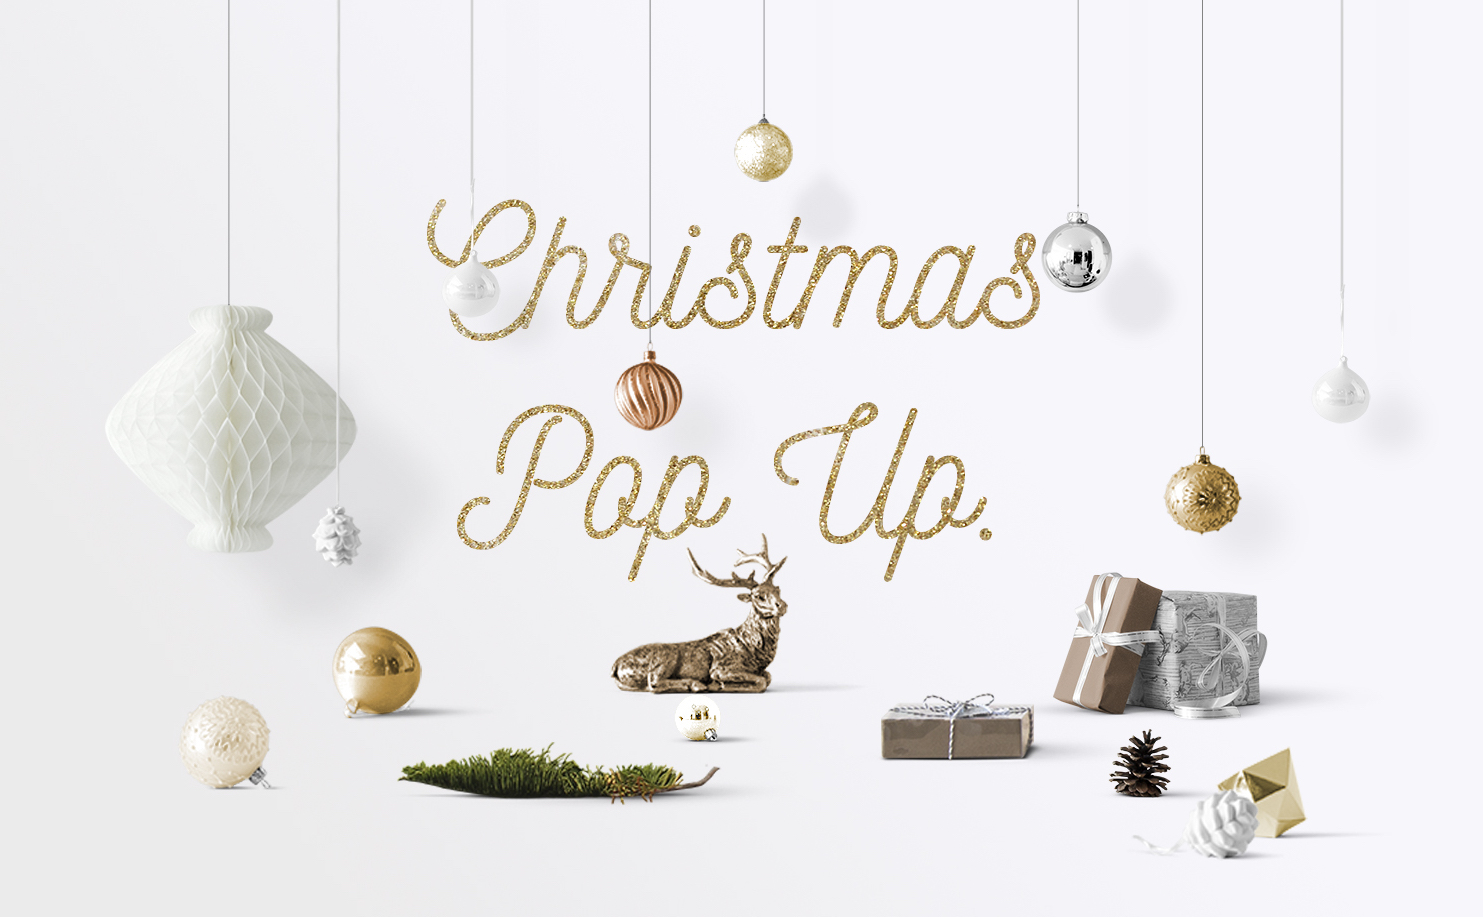 The Pop-Up Collective are back at Wild Artichokes for an all day Christmas shopping special!  - With goodies from The Forest & Co., Ruby Cubes, Love Lammie, Helen Butler Jewellery, SØREN Design, Pippi & Me, Oliver & Purchase, Rachael Foster, Kelpies and Selkies, Bronia Bronia and Pretty Local, it's a perfect chance to tick a few Christmas presents off the list. Of course, a shopping trip wouldn't be complete without a stop for a cuppa (or a glass of wine) and a bite to eat which is why the WA kitchen is open all day for delicious snacks, hot drinks and festive tipples!  Free Entry